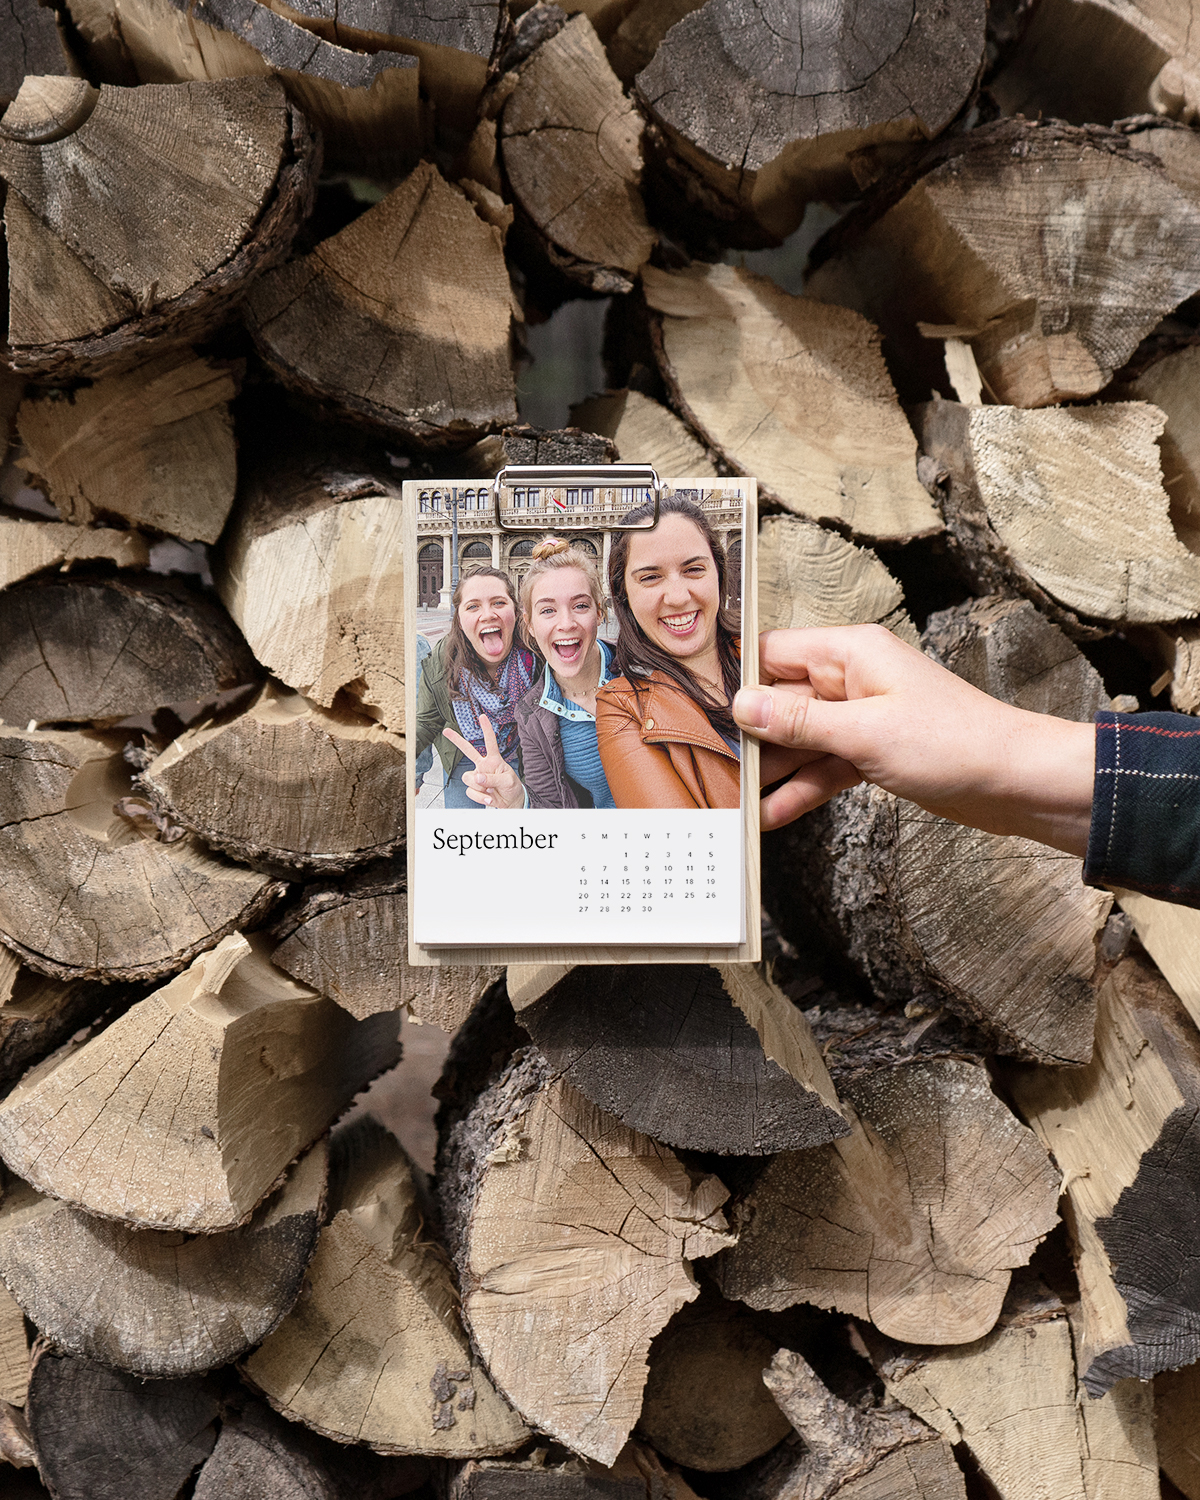 Hand holding up photo calendar with selfie of three friends featured